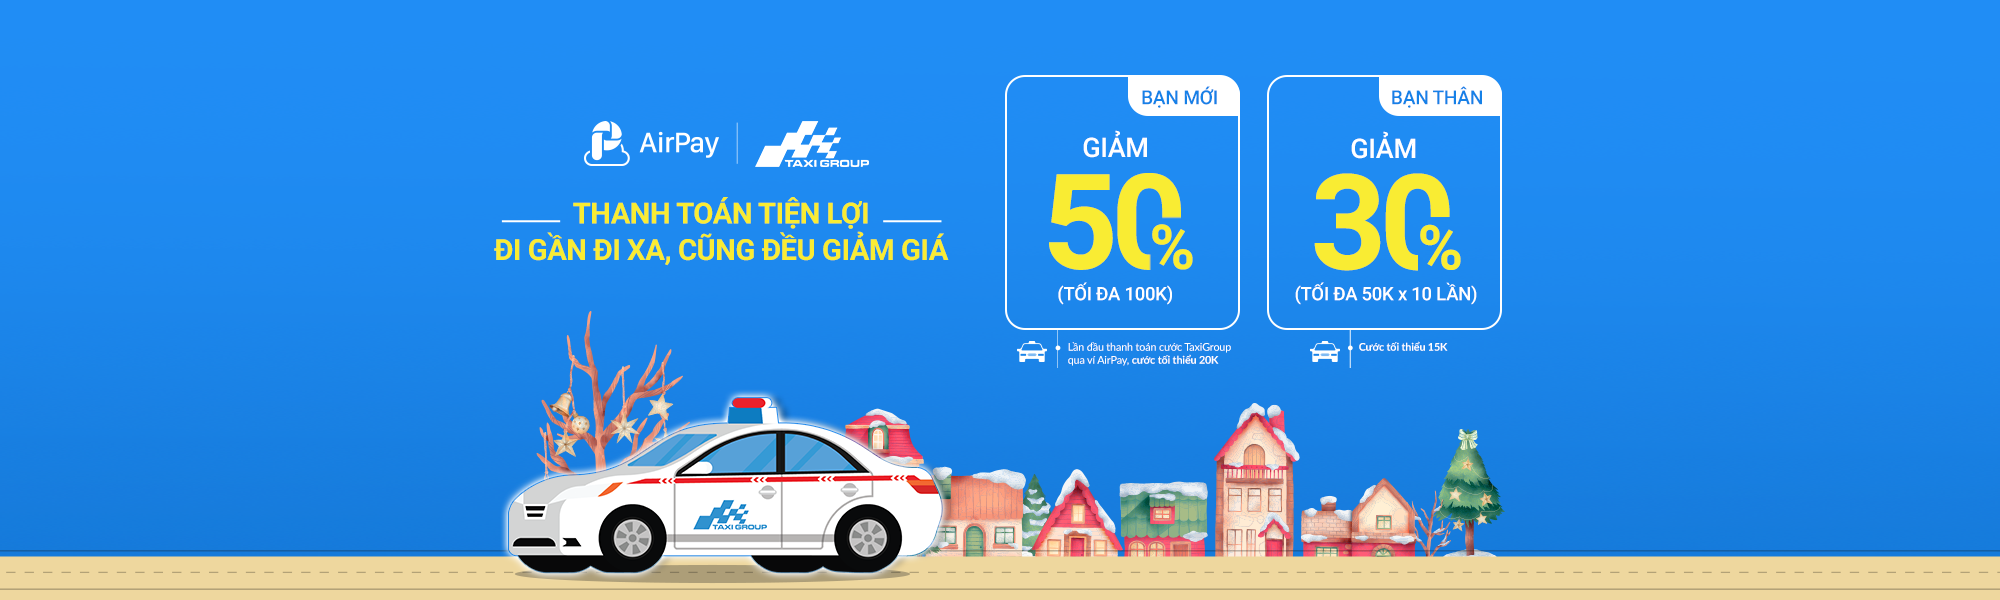 khuyen-mai-len-toi-600k-khi-thanh-toan-cuoc-taxigroup-bang-vi-airpay